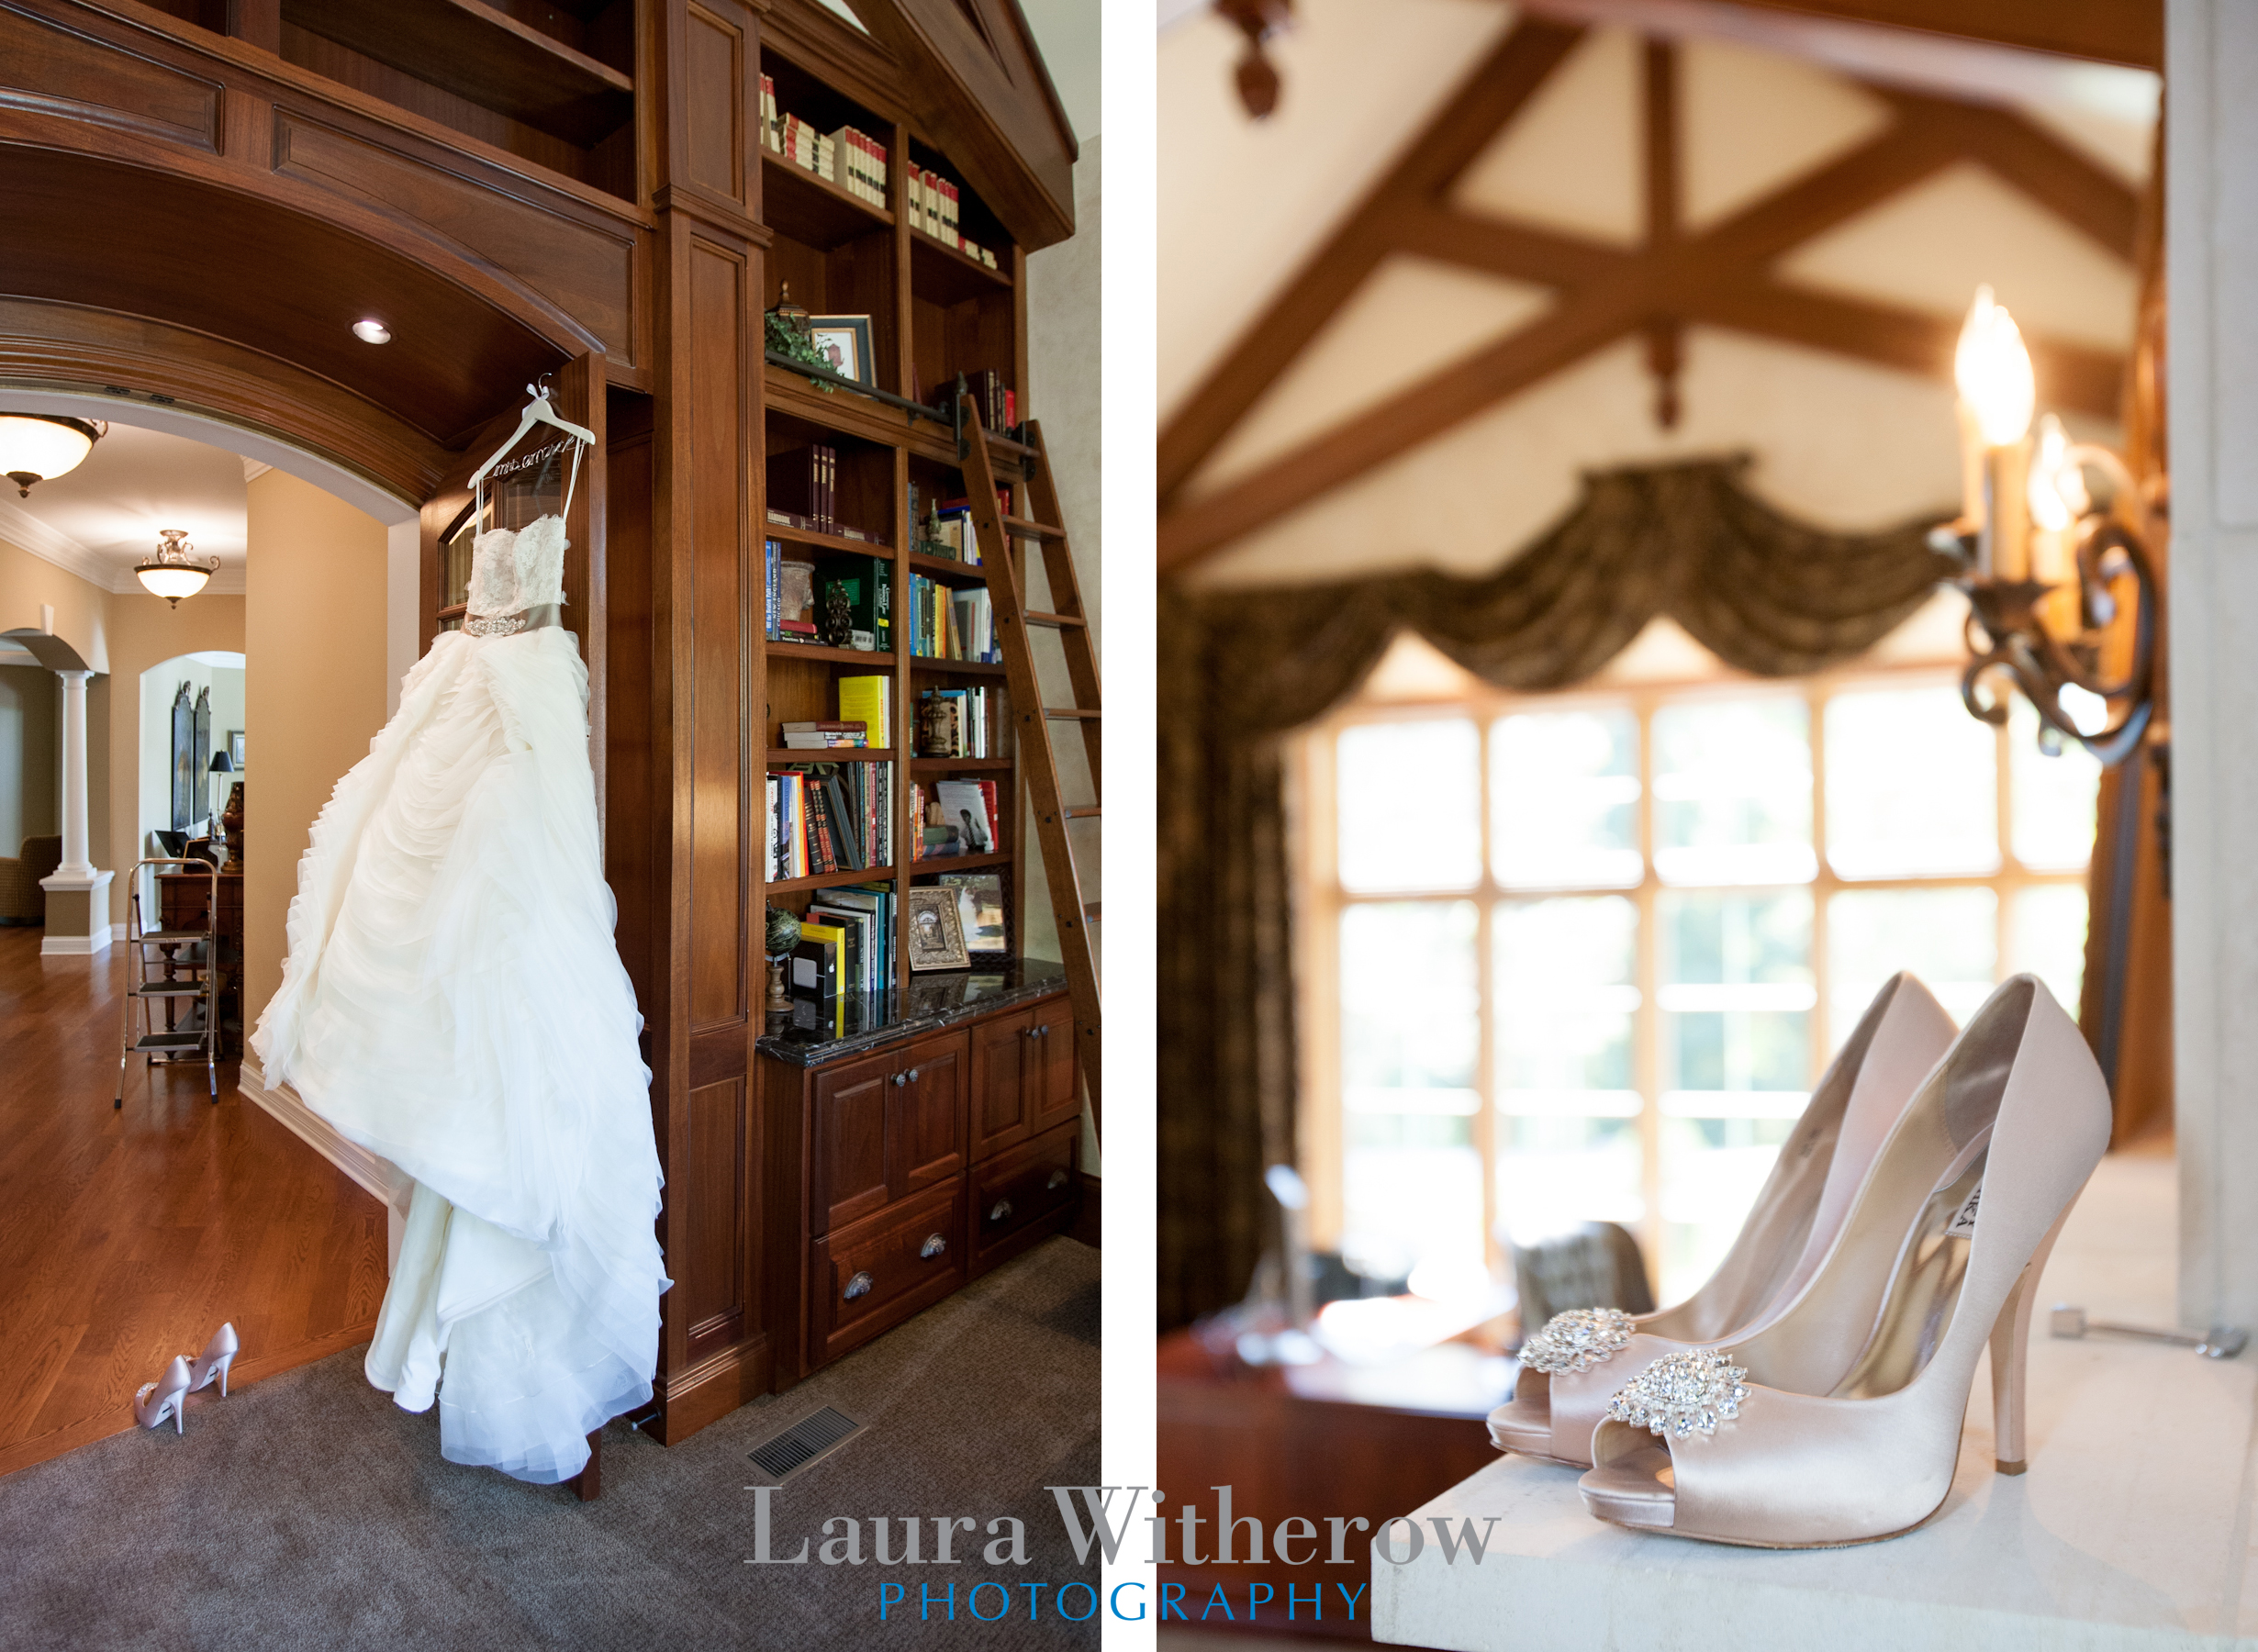 Laura Witherow Photography — Nicole + Thano | 9.15.12 | The ...